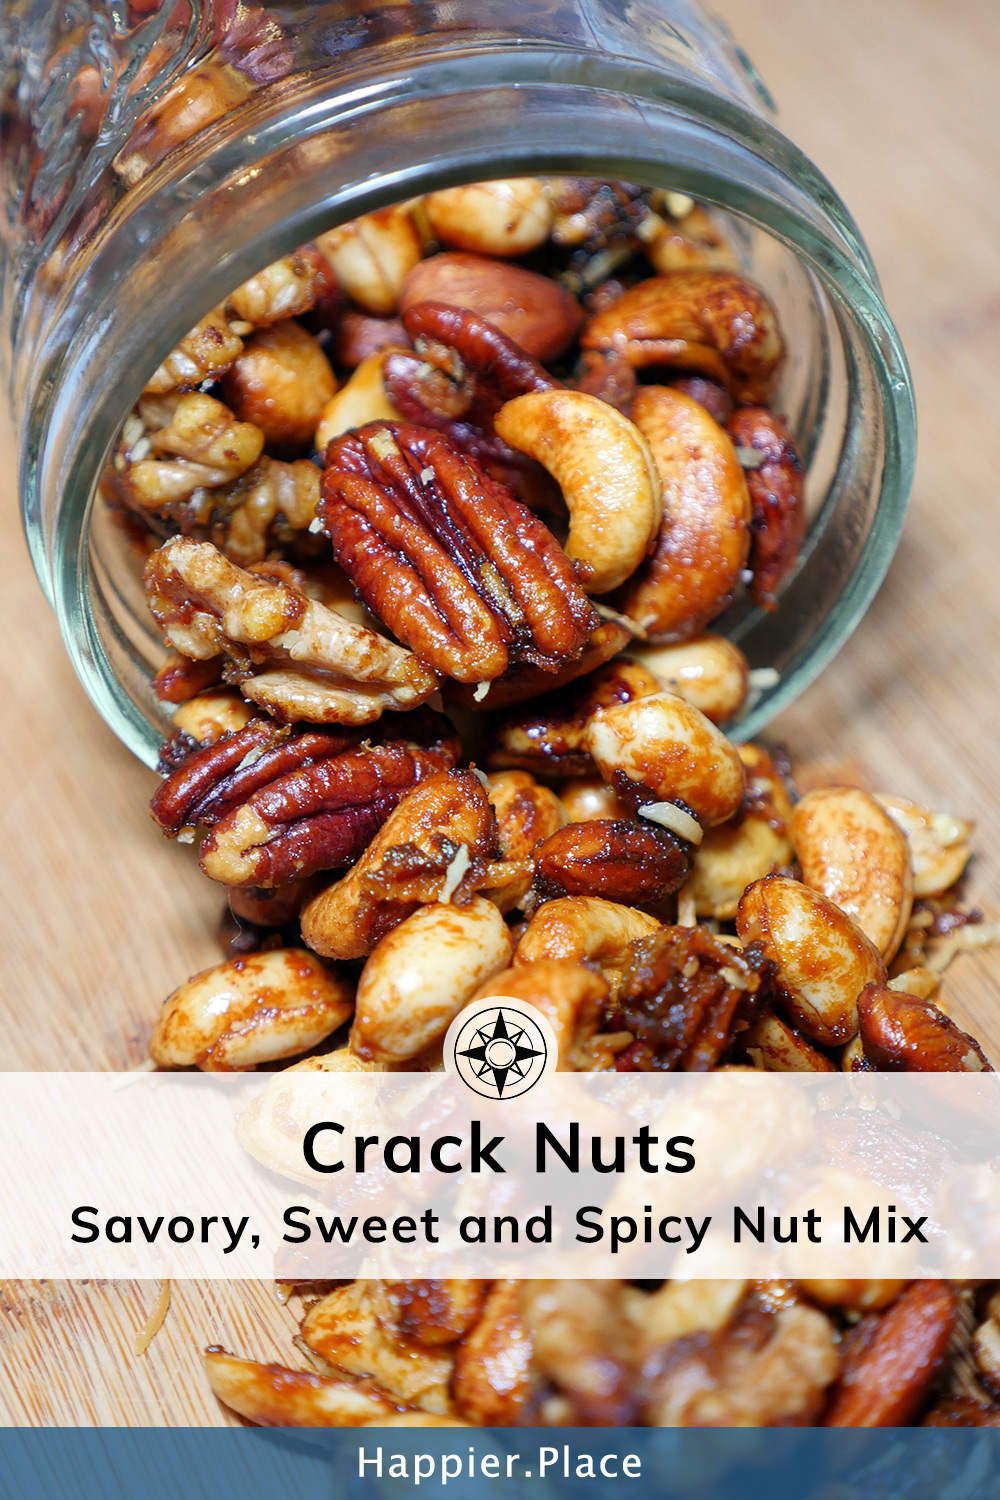 Elevate your next party or outdoor adventure with this irresistible savory, sweet and spicy nut mix. The well-balanced mixed nuts, with just a hint of curry and coconut, are ideal as fancy cocktail nuts or an exotic trail mix. #recipe #easyrecipe #snacks #HappierPlace